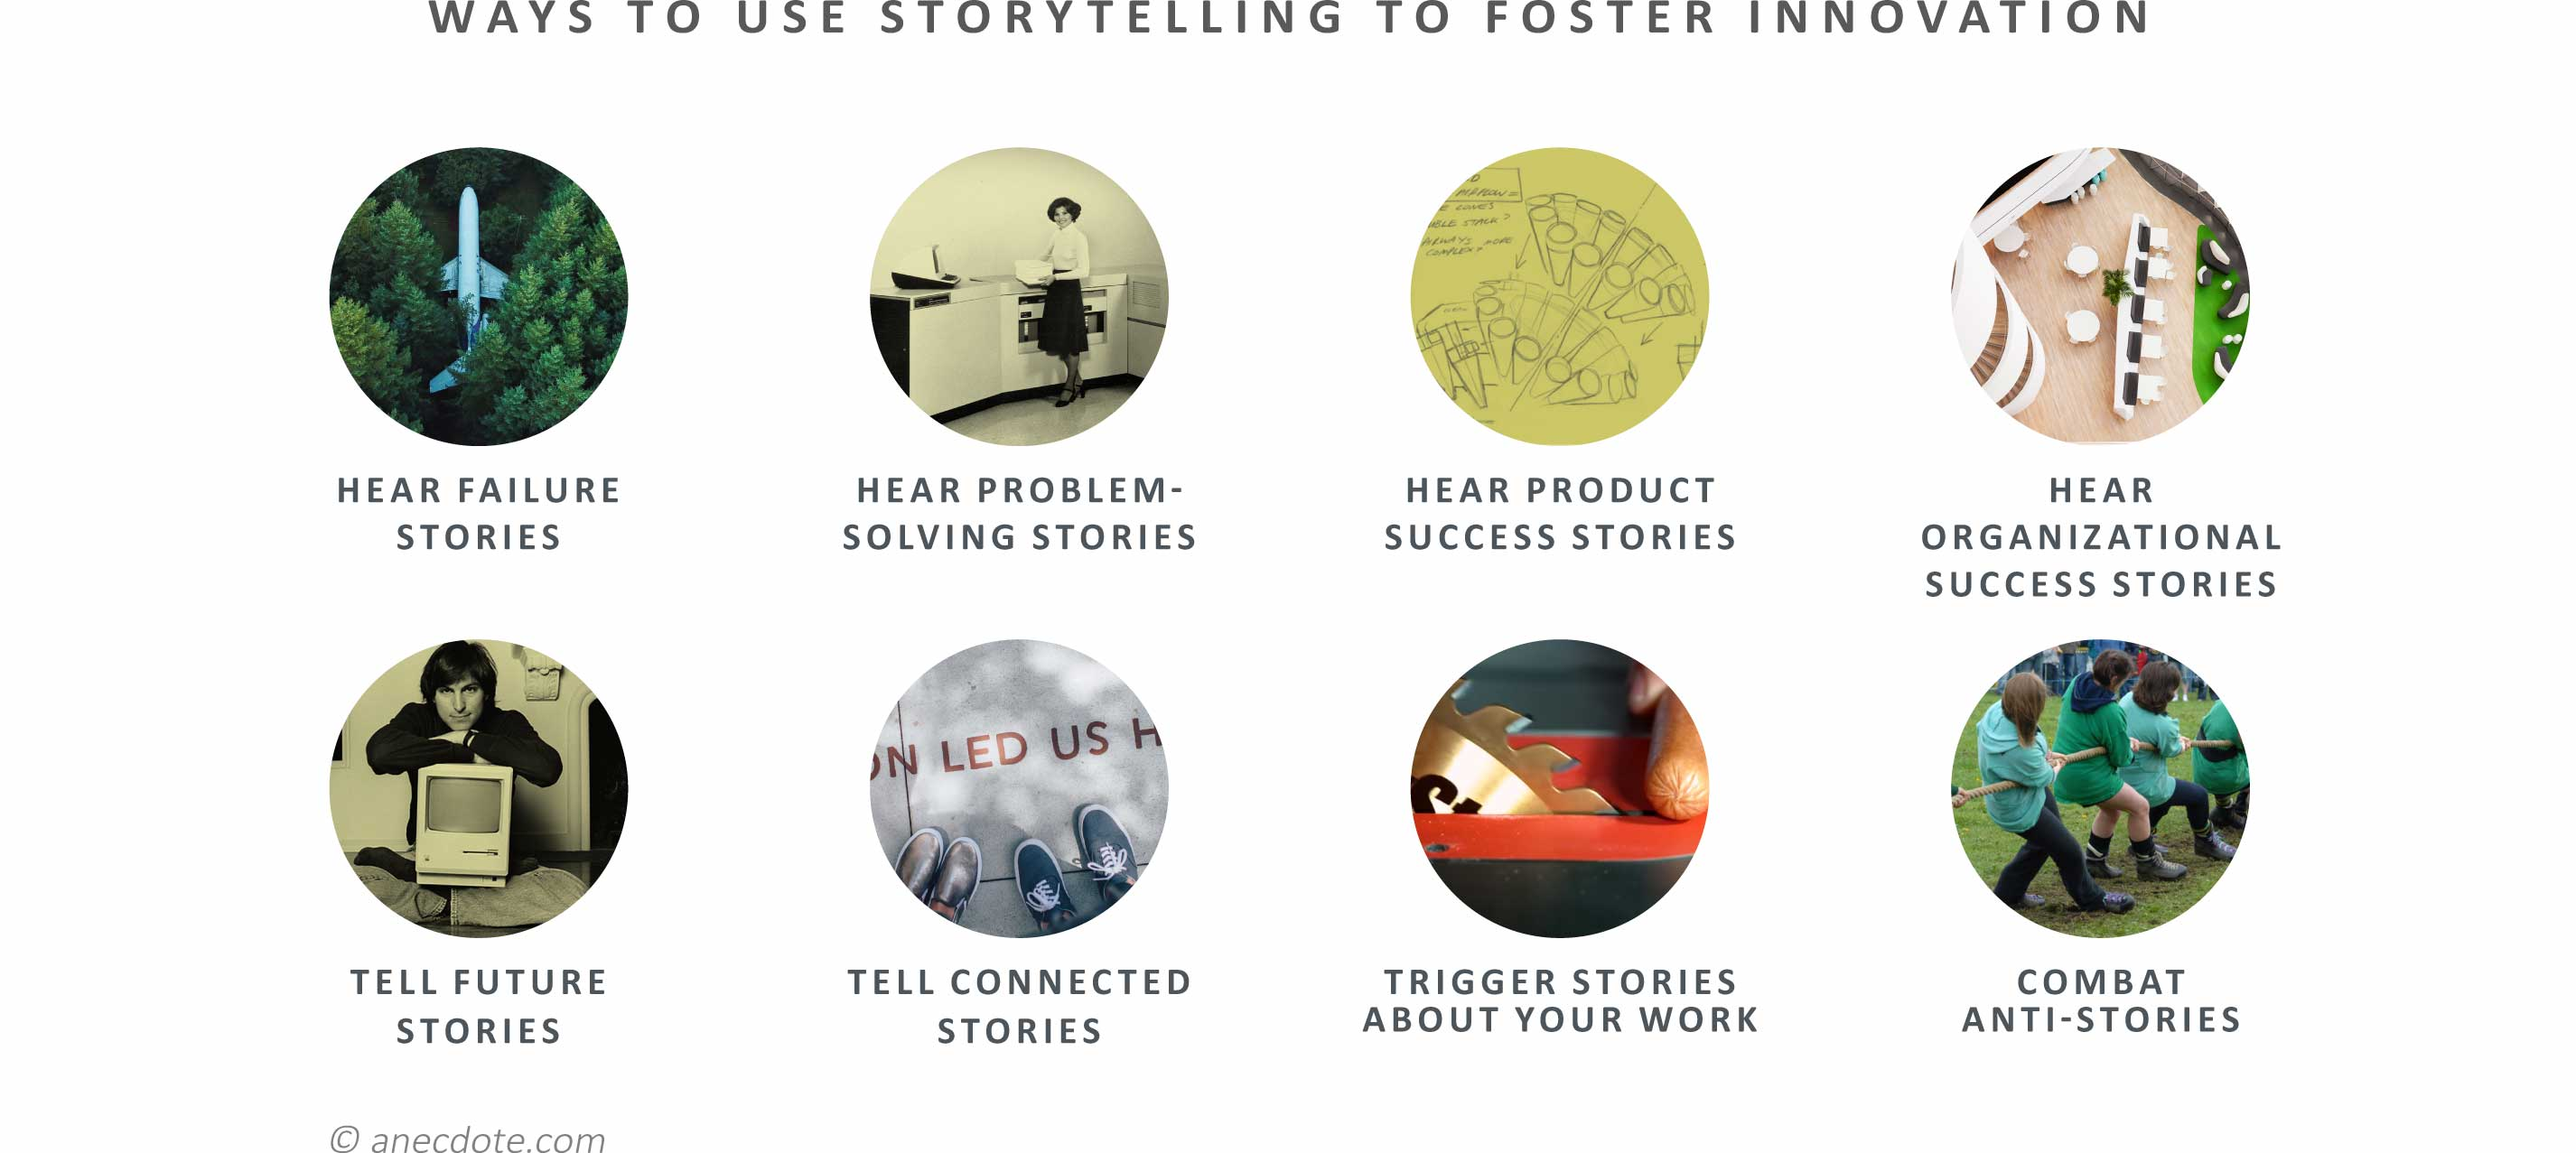 Ways to use storytelling to foster innovation